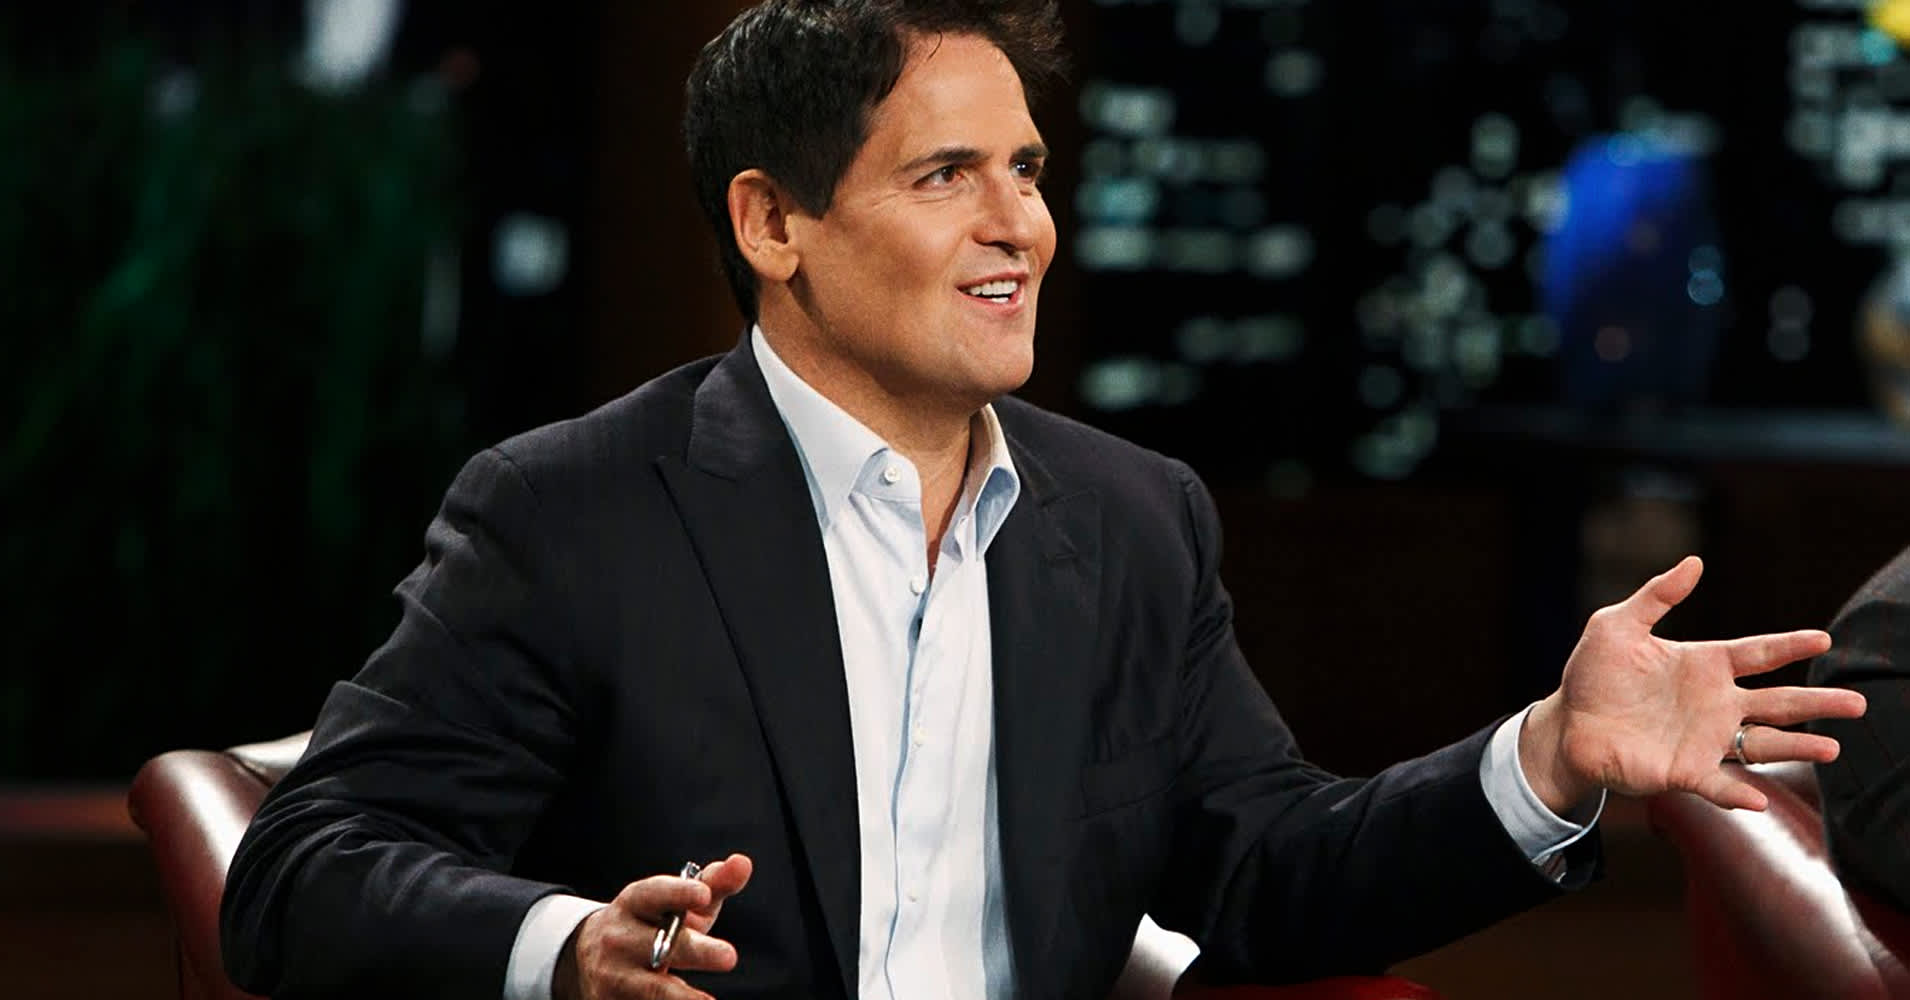 https://fm.cnbc.com/applications/cnbc.com/resources/img/editorial/2016/08/26/103896054-sharktank-cuban-bio-photo-v2-1910x1000.1910x1000.jpg